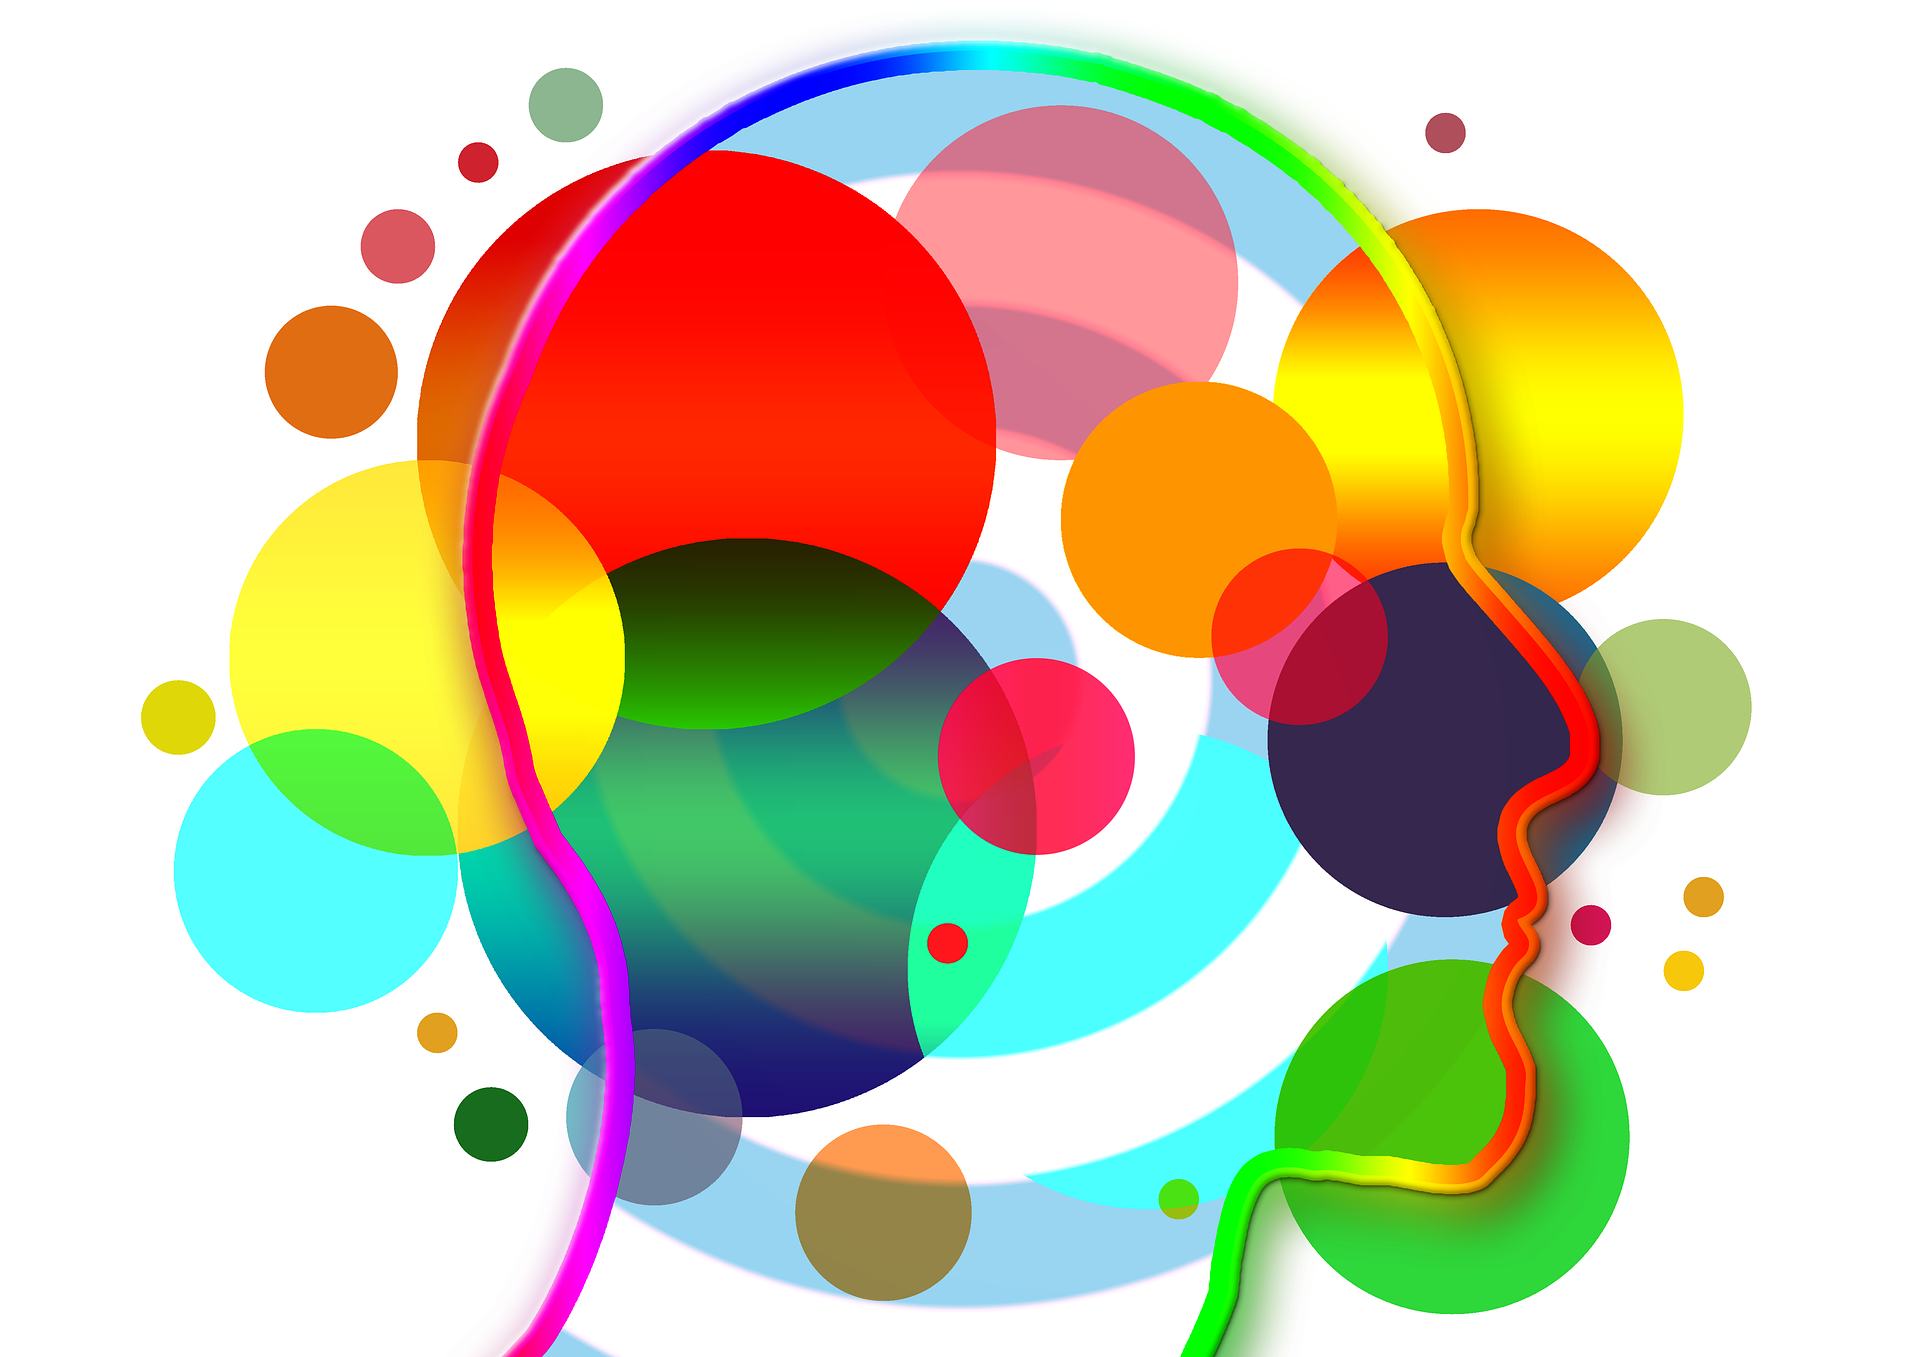 A graphics with the brain and colourful circles around representing different senses.